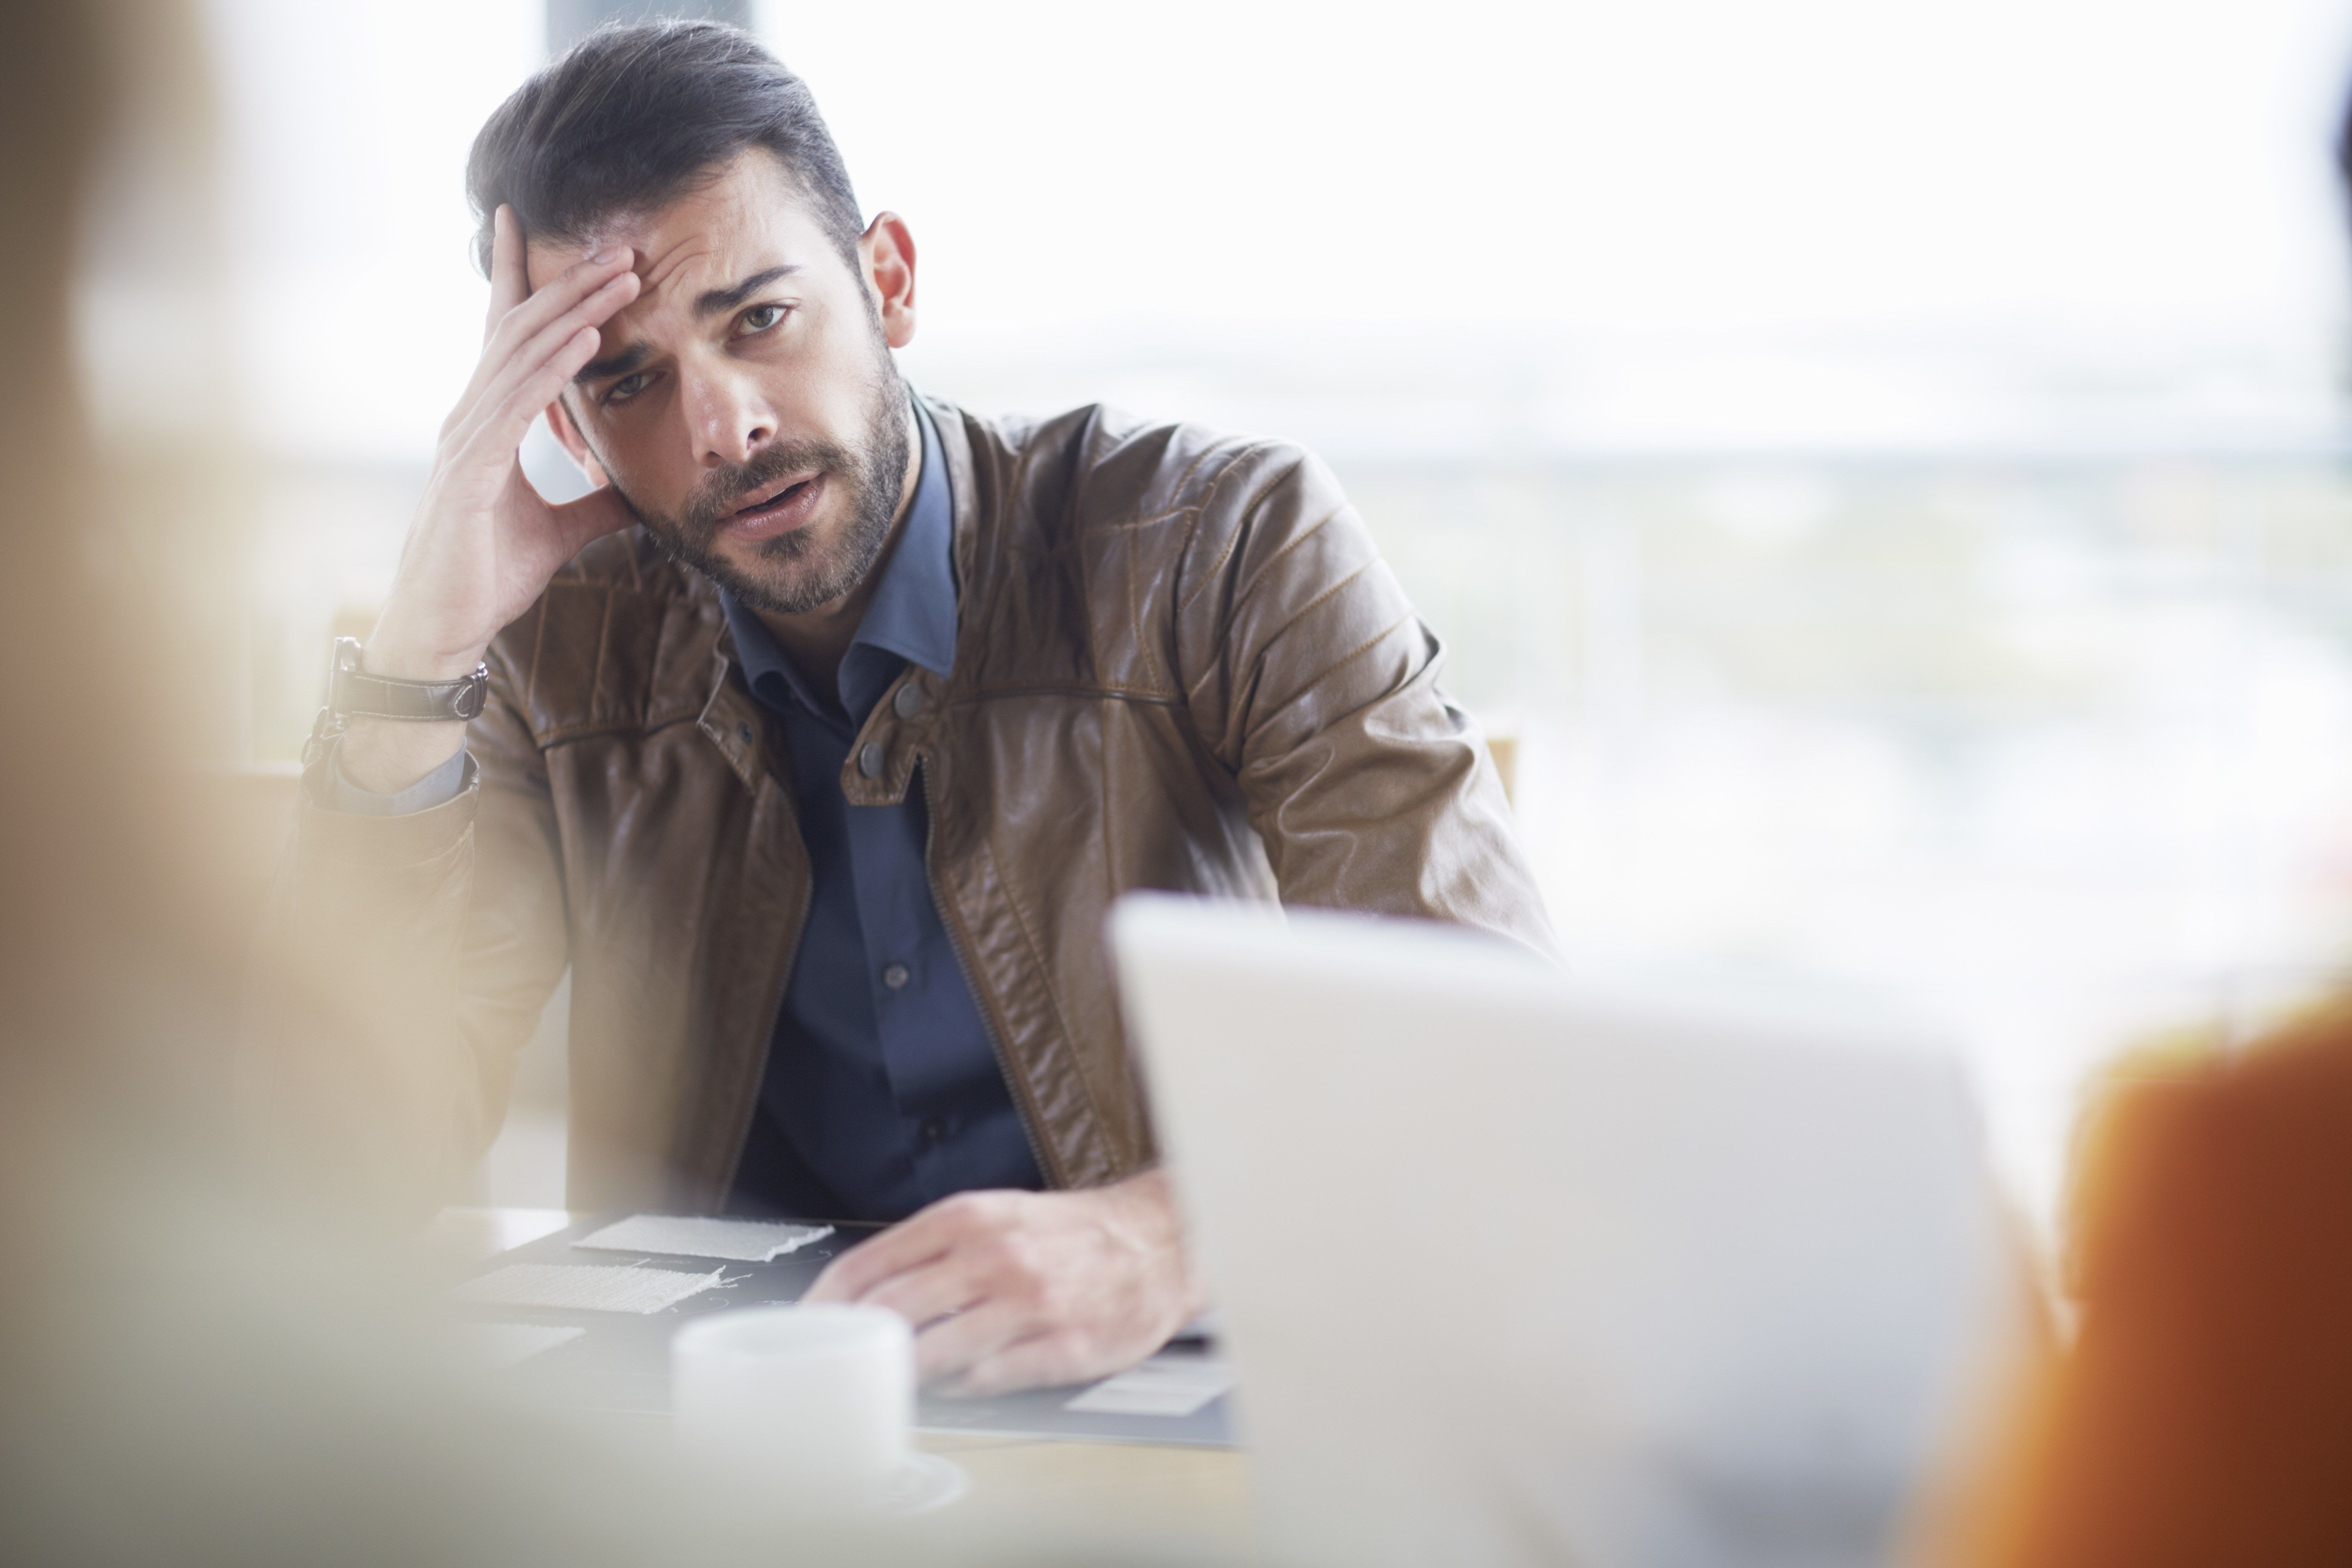 11 Signs You're Too Stressed At Work (and How to Fix That